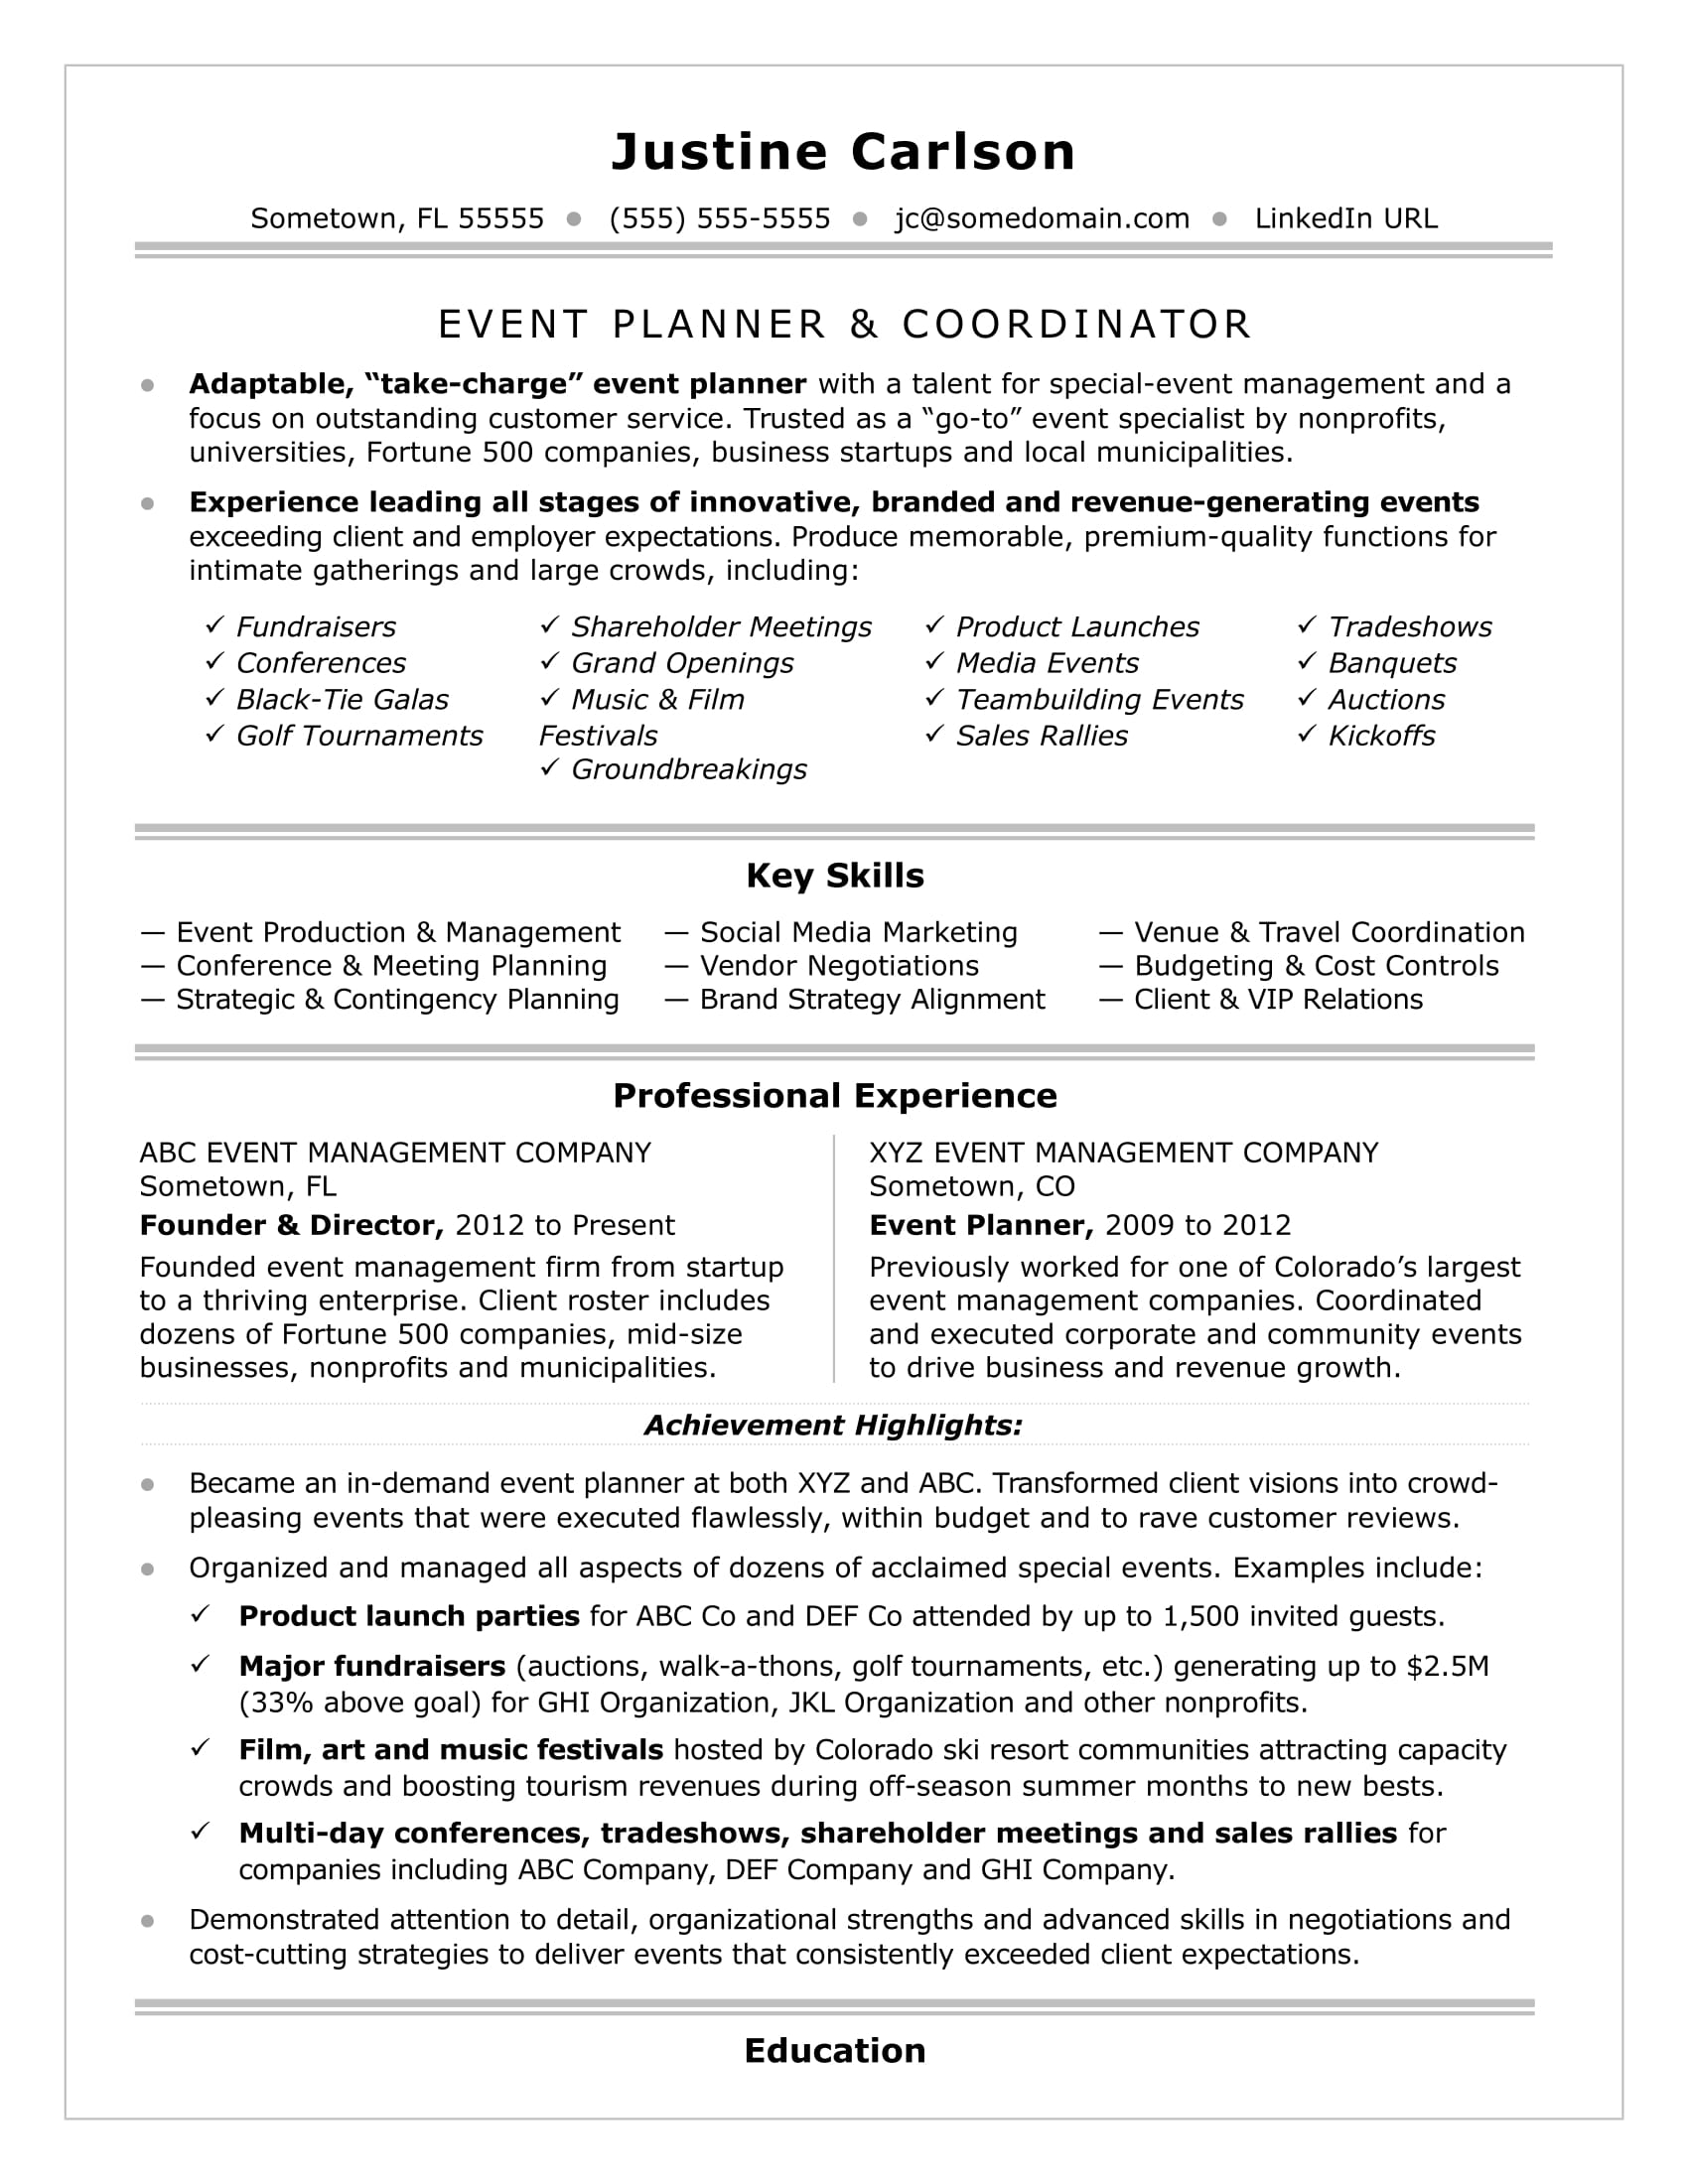 Event Coordinator Resume Sample Awesome Design